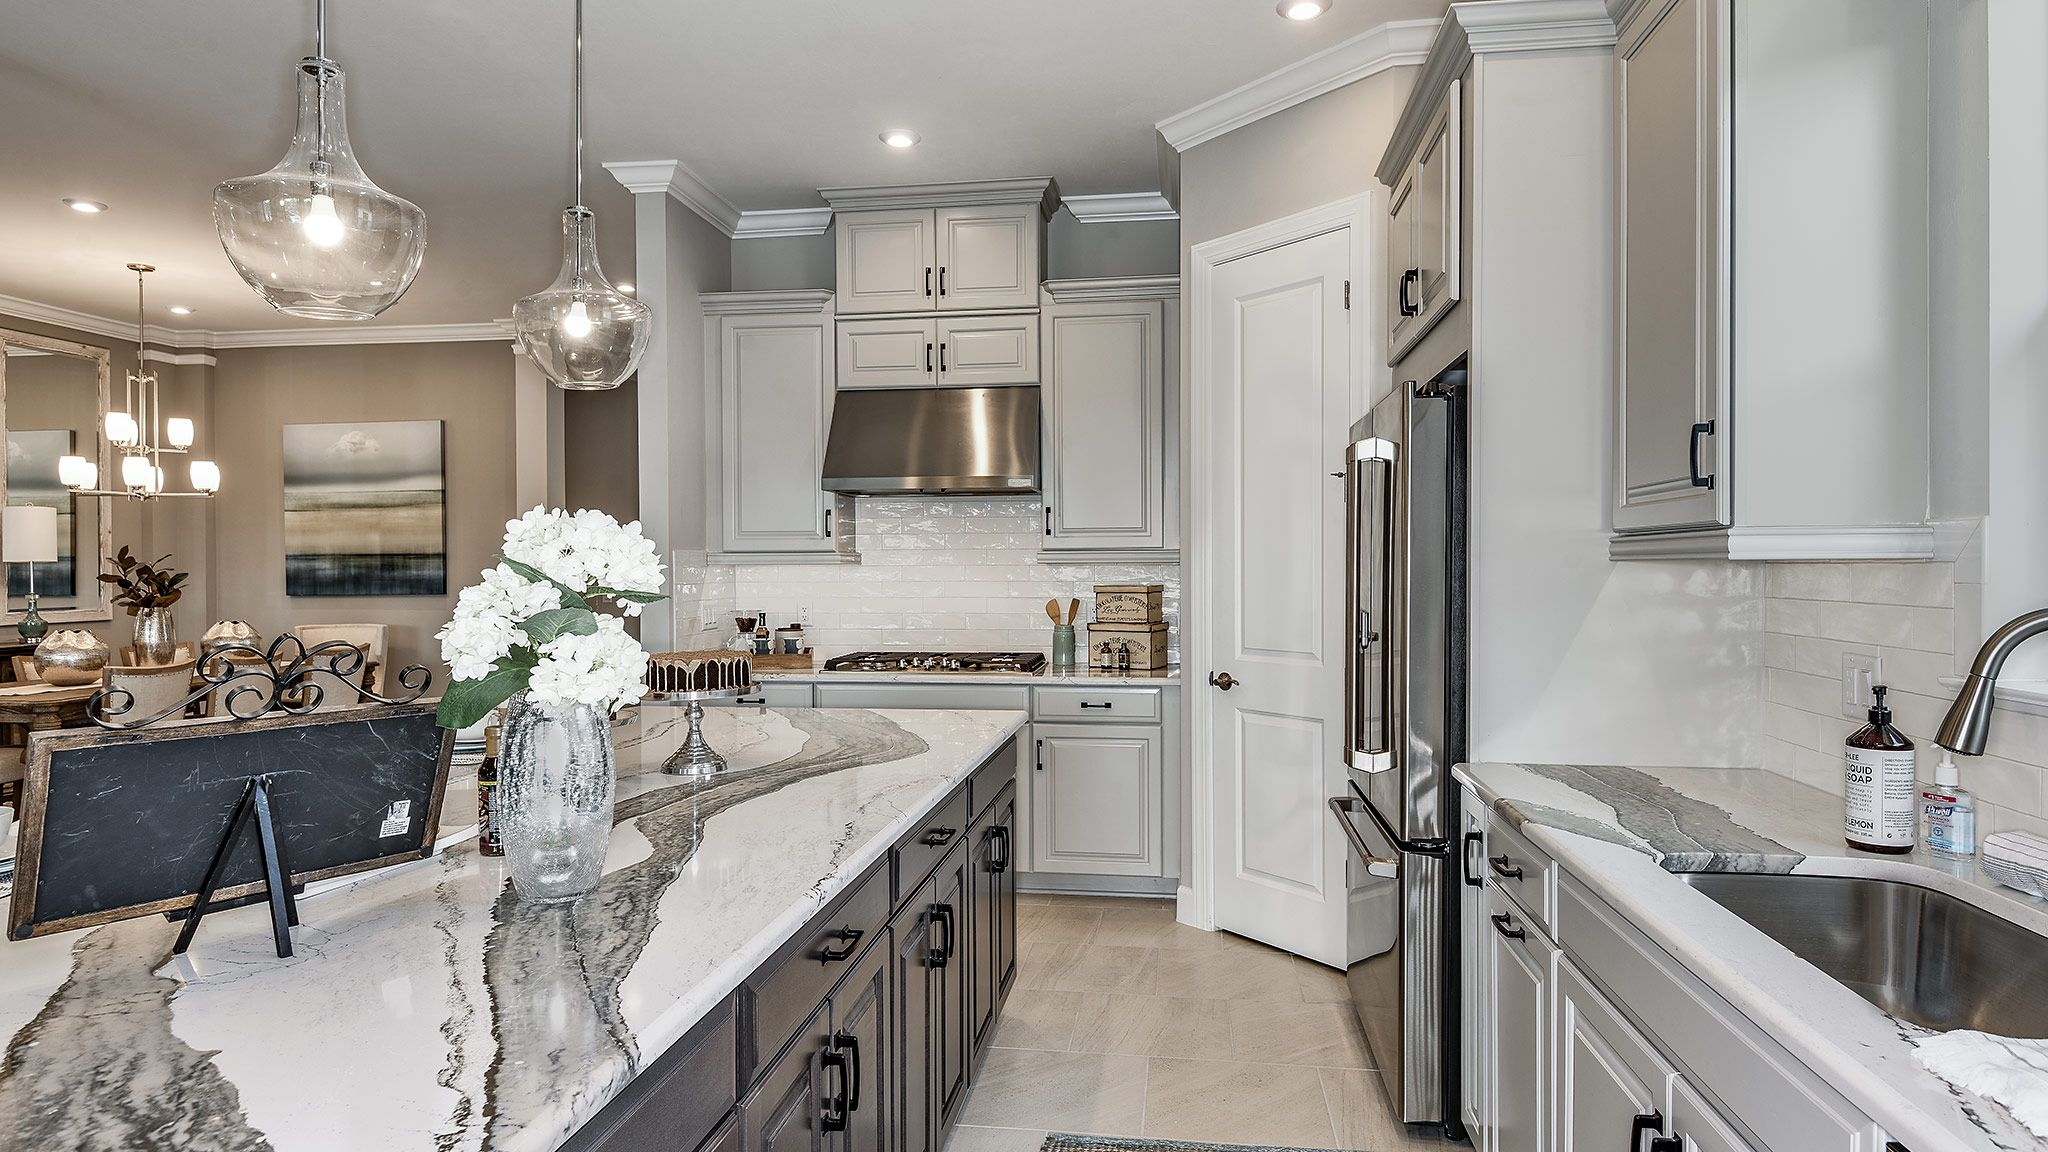 Kitchen featured in the Lazio Plan By Taylor Morrison in Naples, FL